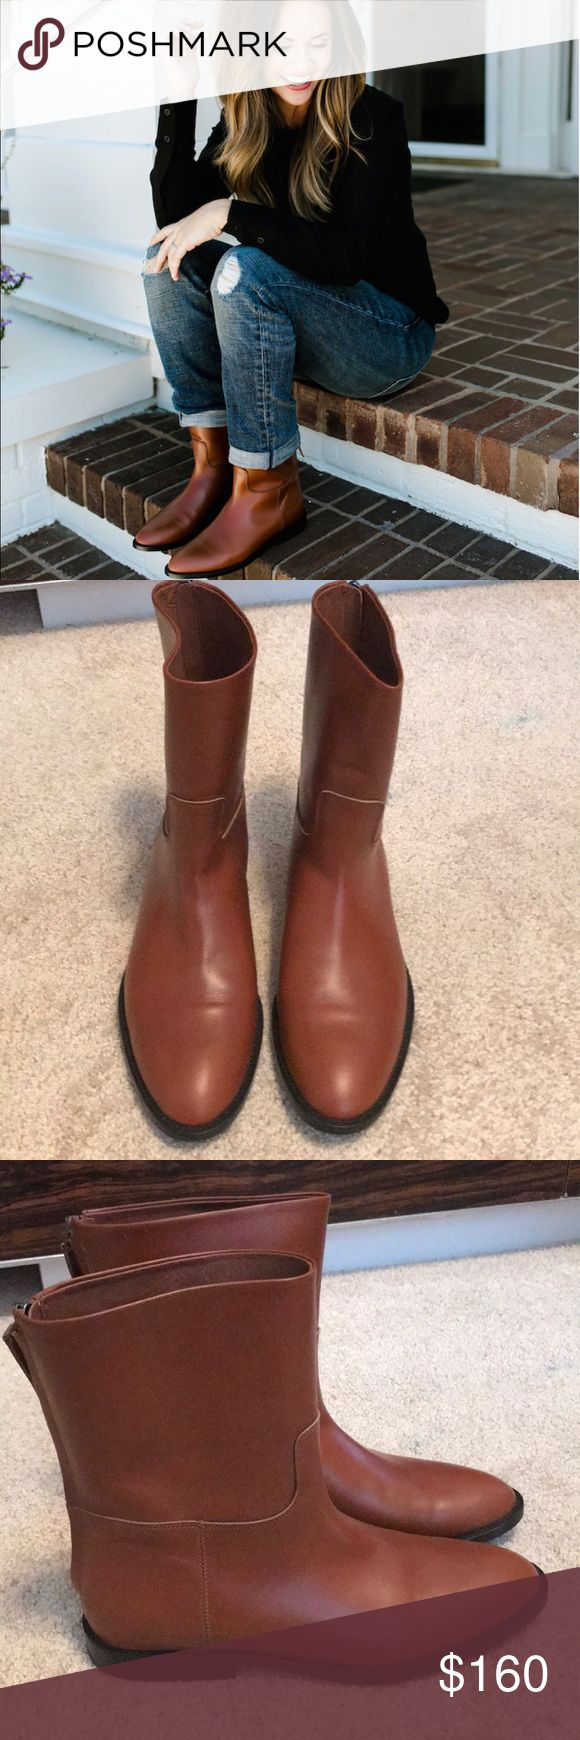 Leather brown flat ankle boots UE 40 Beautiful leather boots. Made in Italy. Great condition. Jenni Kayne Shoes Ankle Boots & Booties